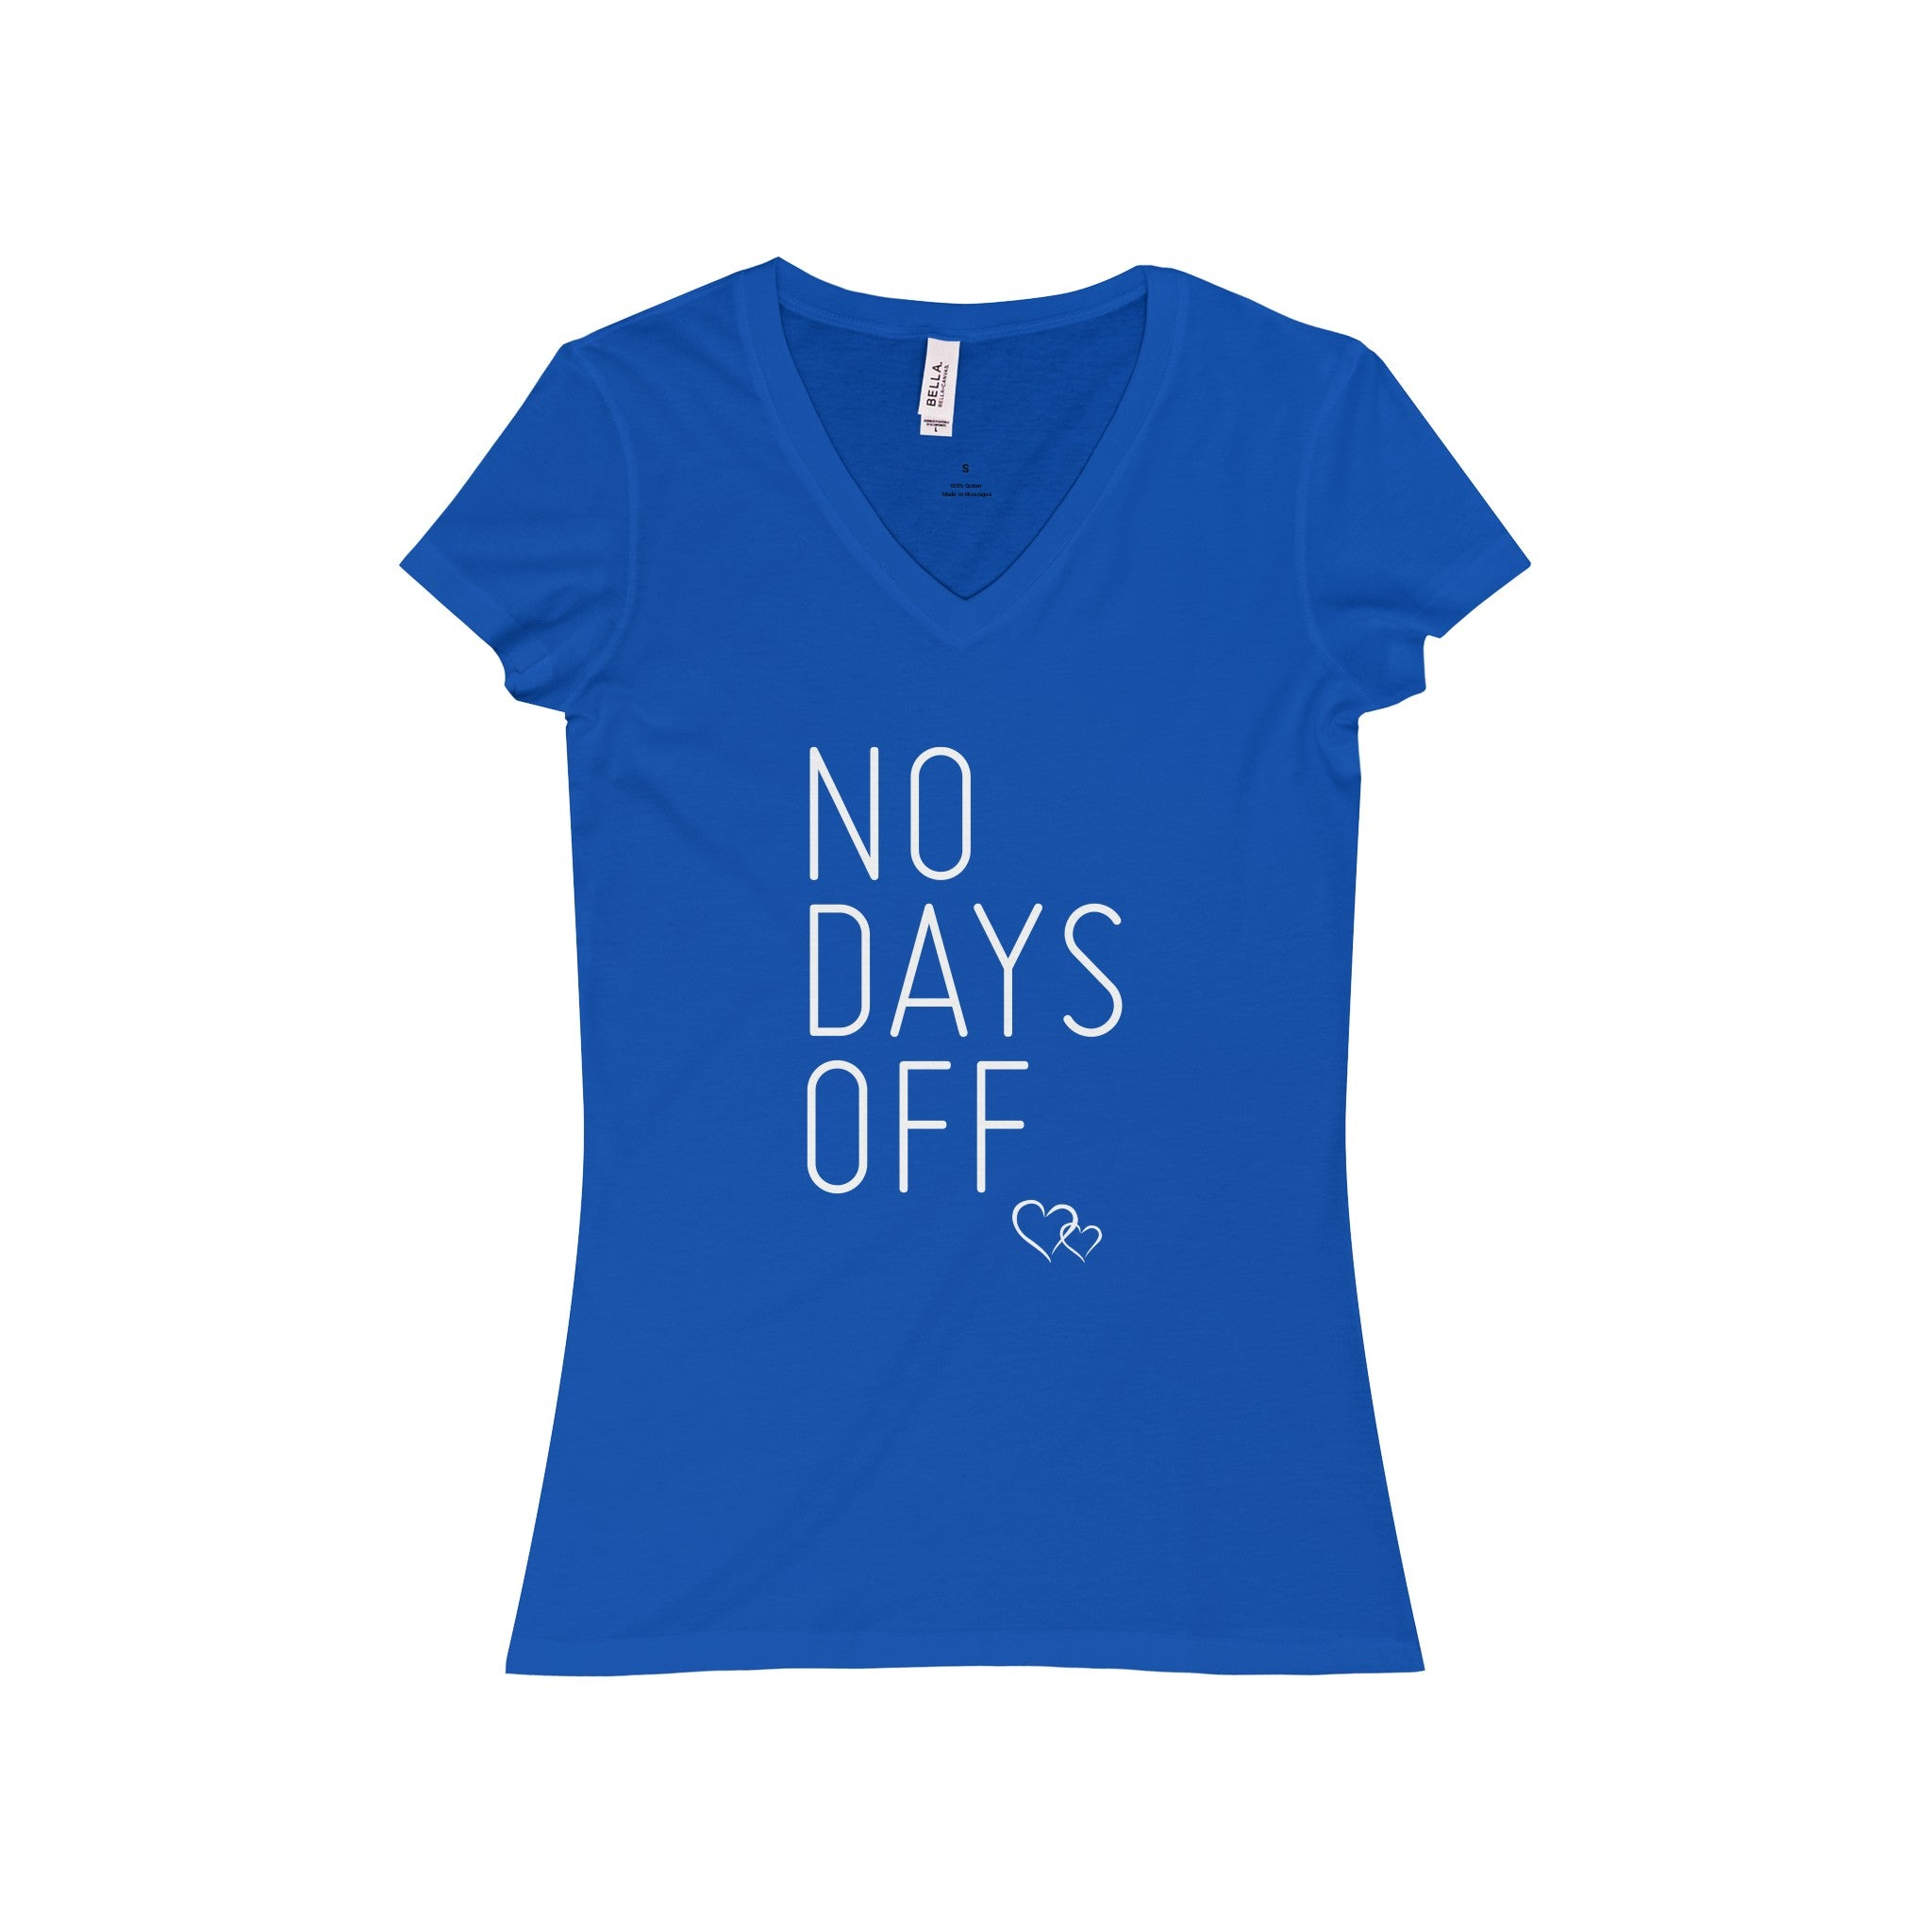 NO DAYS OFF - Short Sleeve V